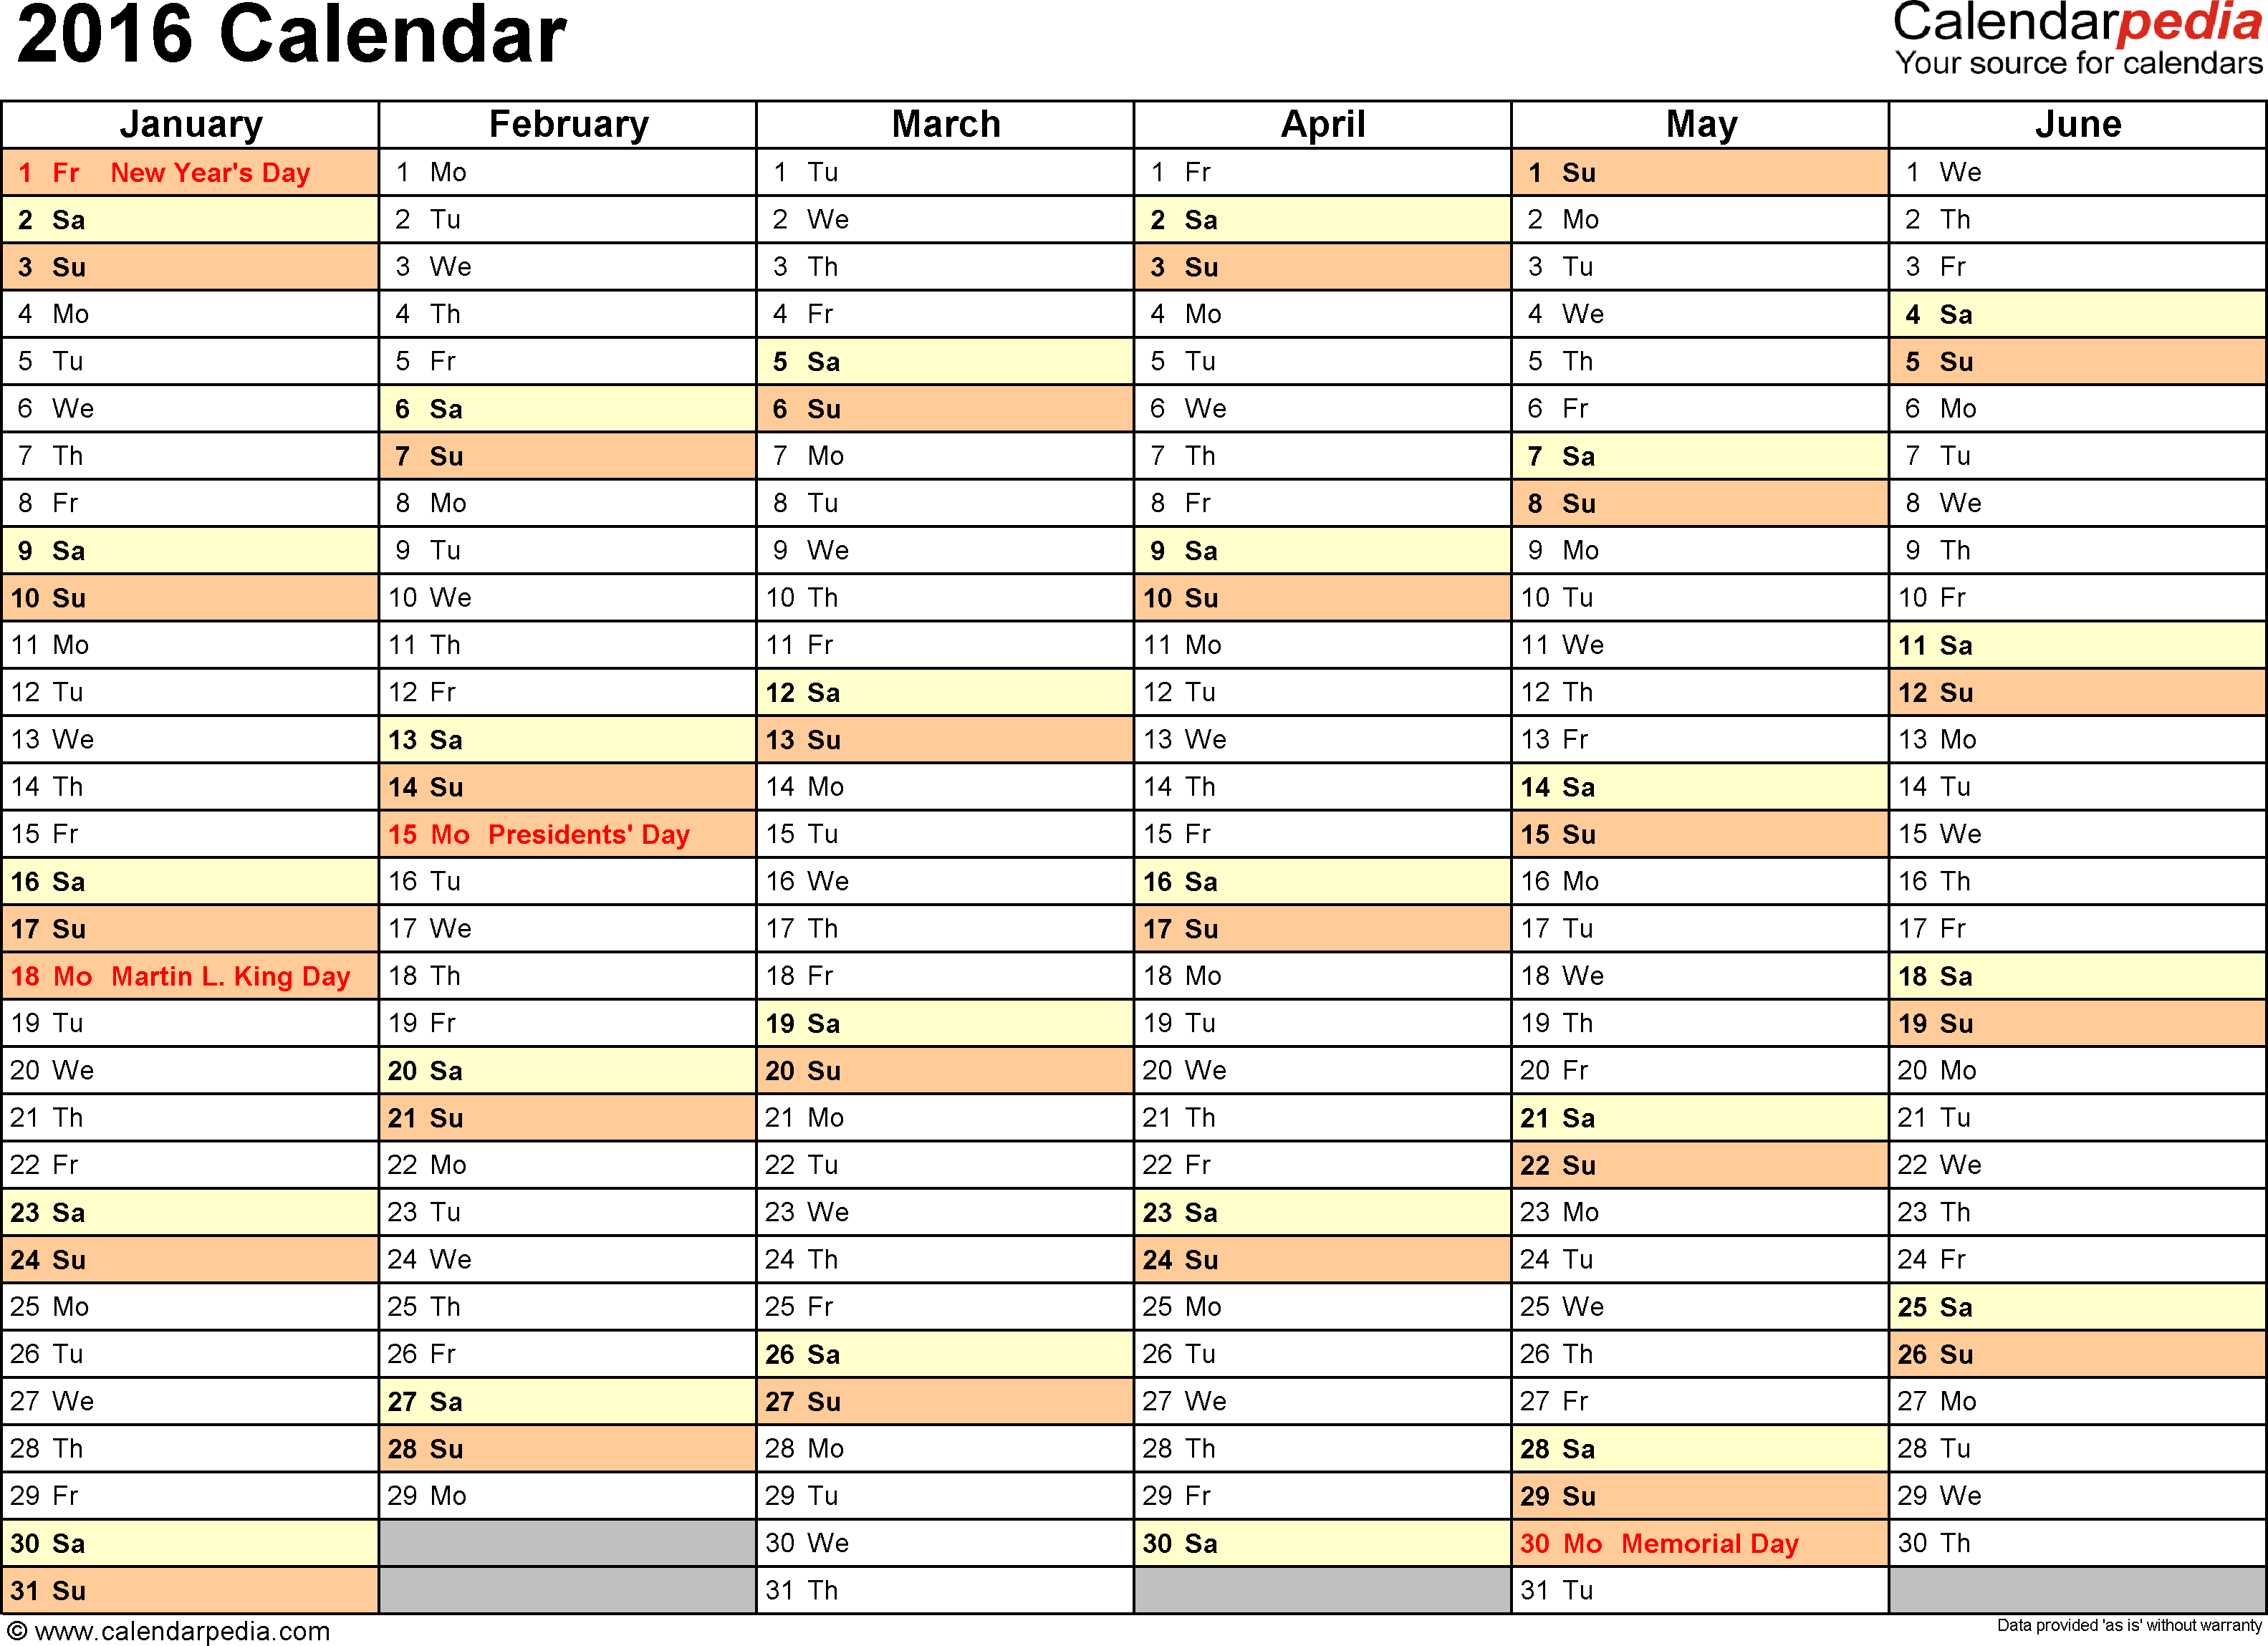 Ediblewildsus  Pleasant  Calendar  Download  Free Printable Excel Templates Xls With Interesting Template   Calendar For Excel Months Horizontally  Pages Landscape Orientation With Amusing Excel Vba Password Remover Also Excel Organize Alphabetically In Addition Excel Formula Dates And Calculate Formula In Excel As Well As Excel Column Sort Additionally Multiple Regression Equation Excel From Calendarpediacom With Ediblewildsus  Interesting  Calendar  Download  Free Printable Excel Templates Xls With Amusing Template   Calendar For Excel Months Horizontally  Pages Landscape Orientation And Pleasant Excel Vba Password Remover Also Excel Organize Alphabetically In Addition Excel Formula Dates From Calendarpediacom